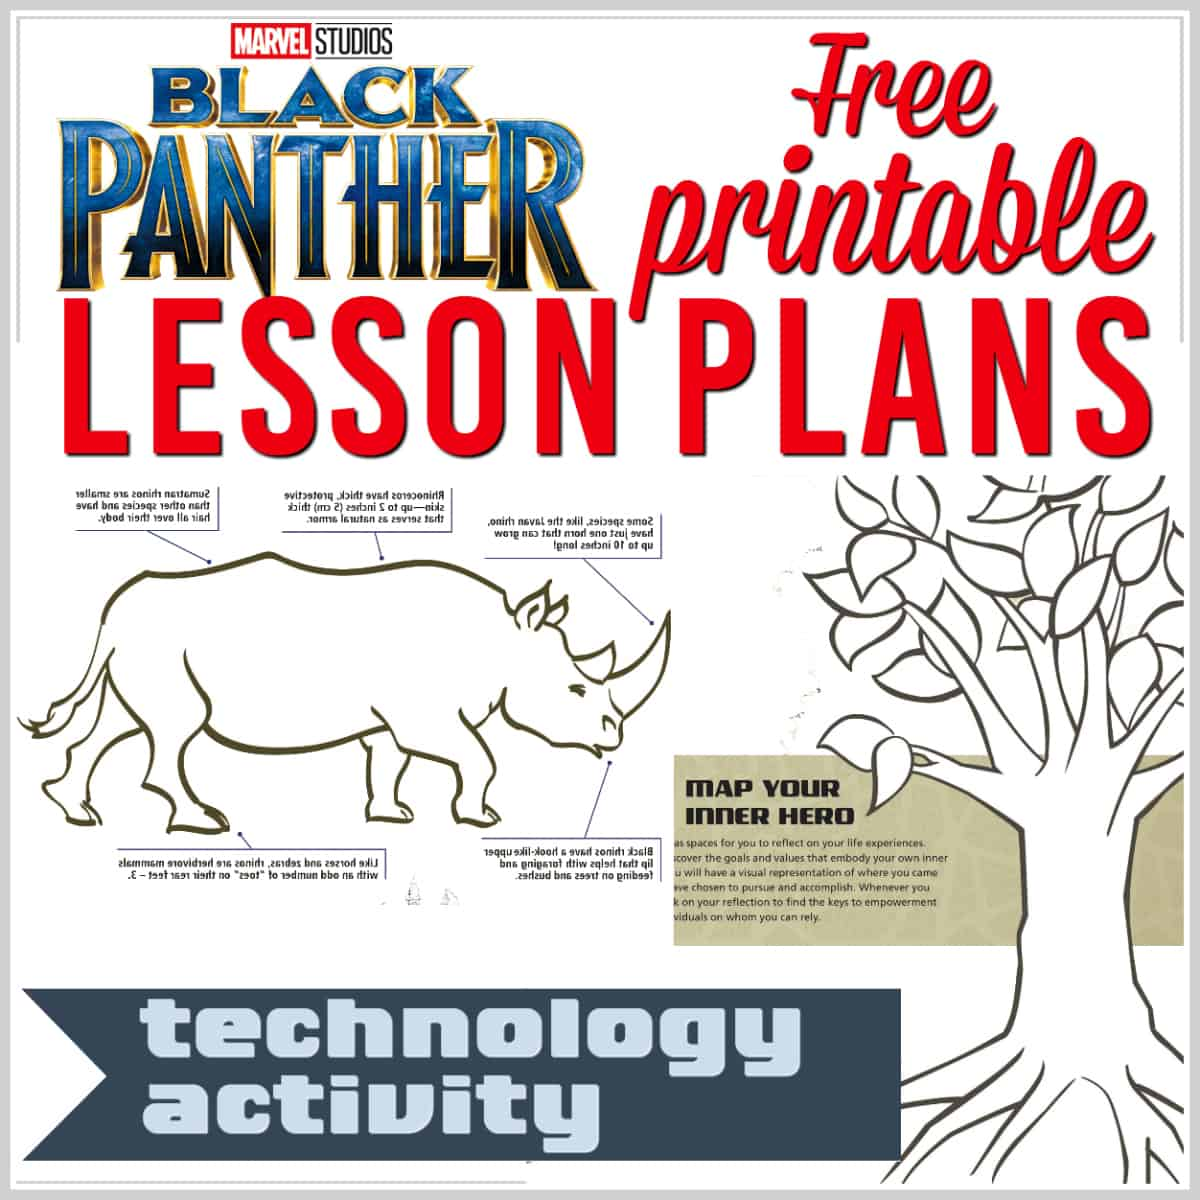 Black Panther lesson plans